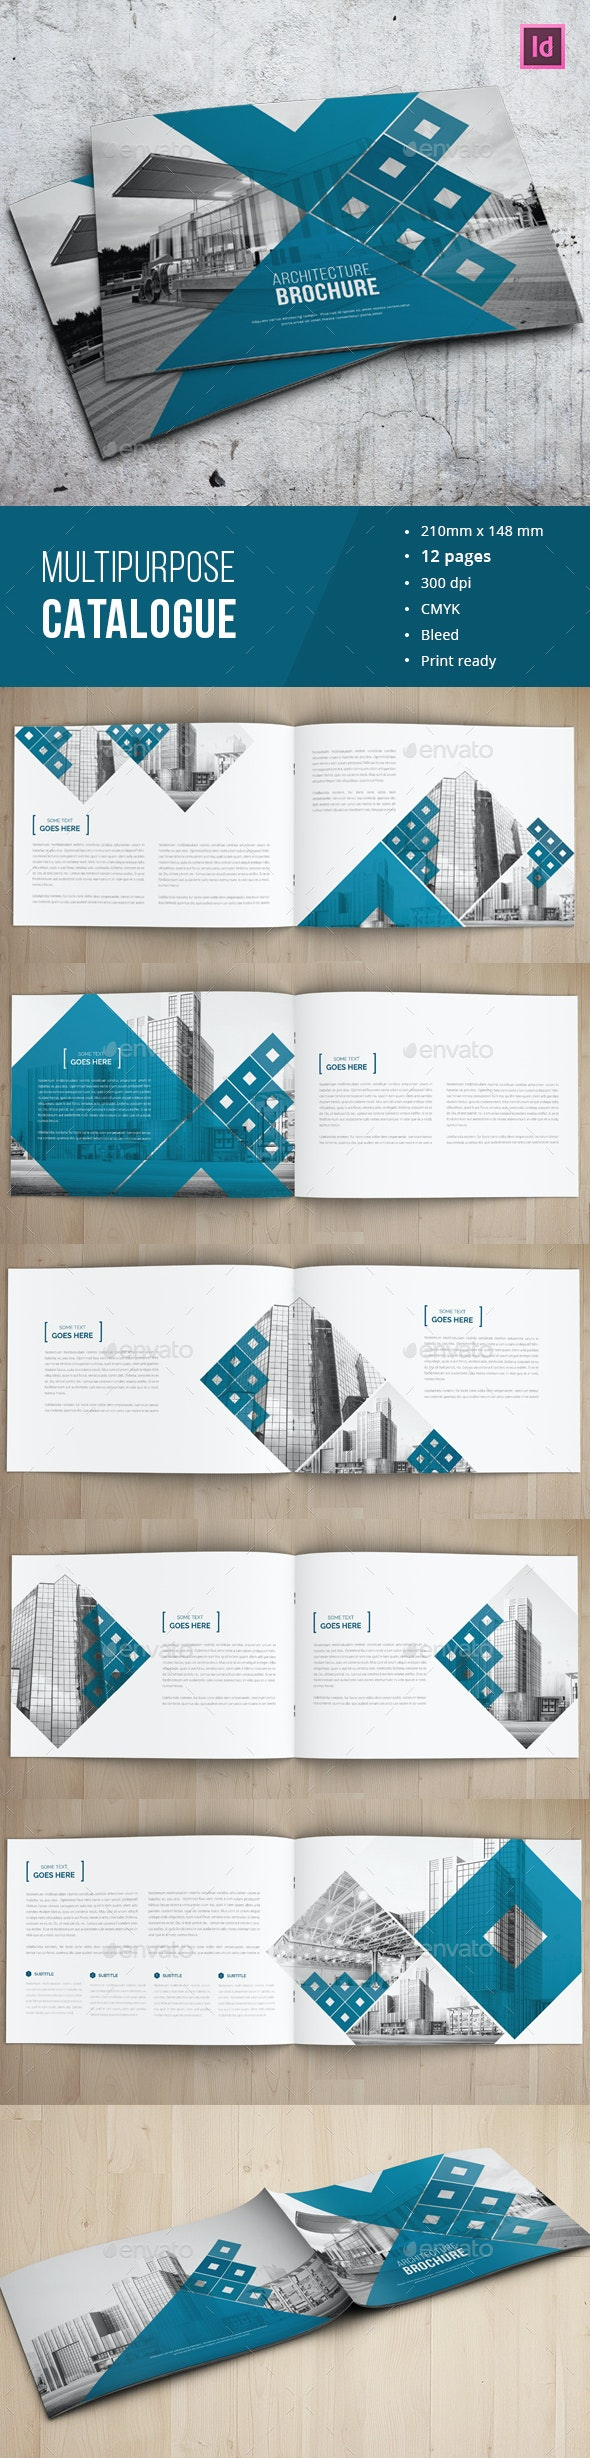 5 Best Brochure Templates  for February 2019